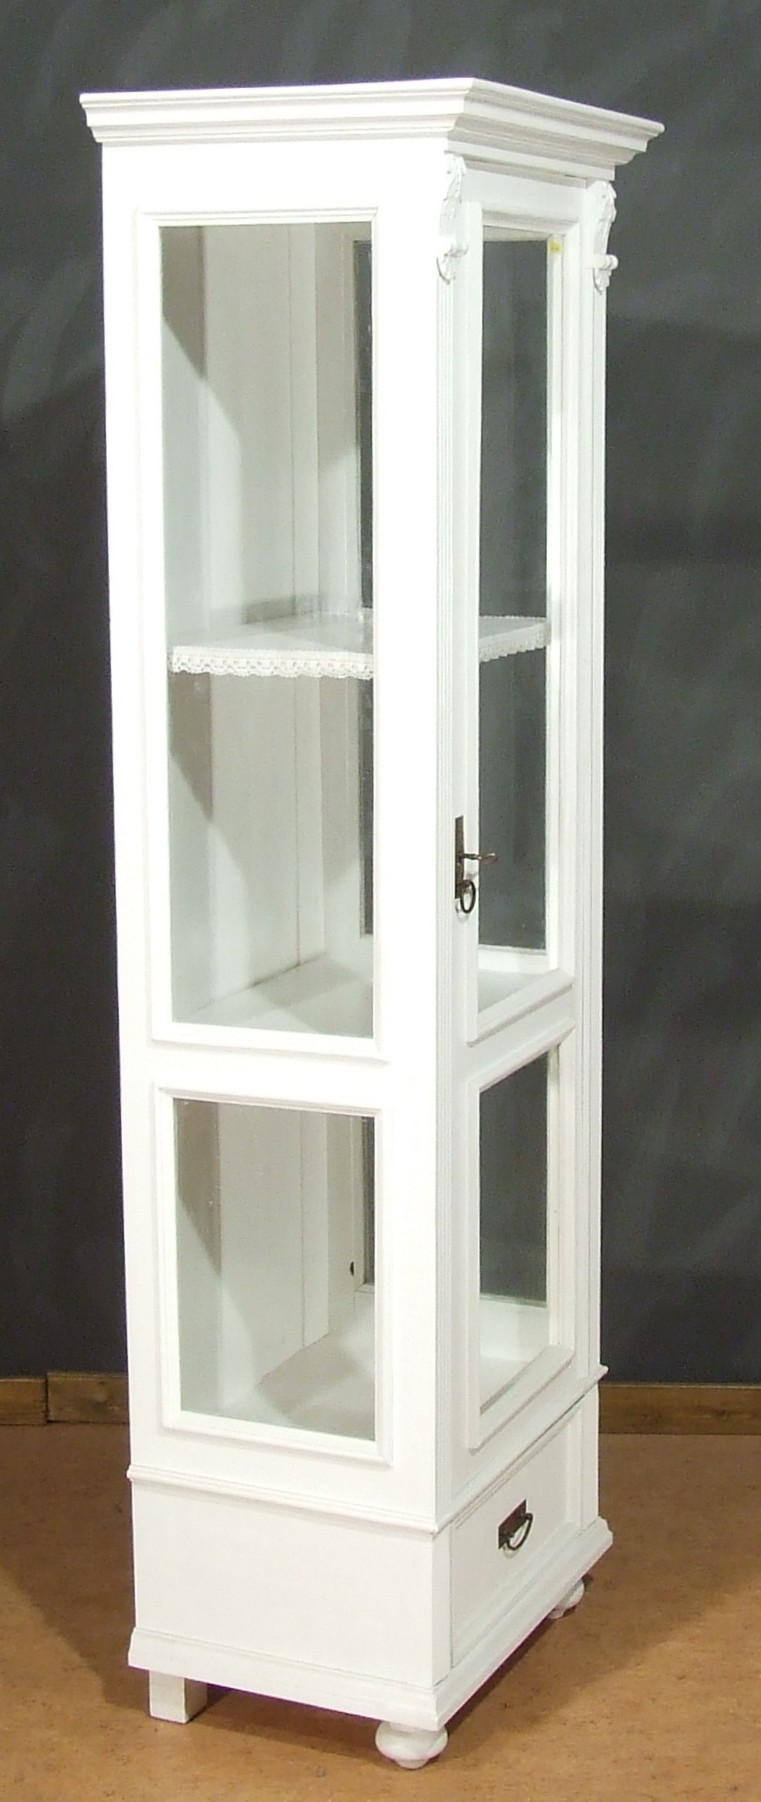 vi106 vitrine sammelvitrine landhausstil weiss 50 g nstiger da vorf hrmodell country. Black Bedroom Furniture Sets. Home Design Ideas